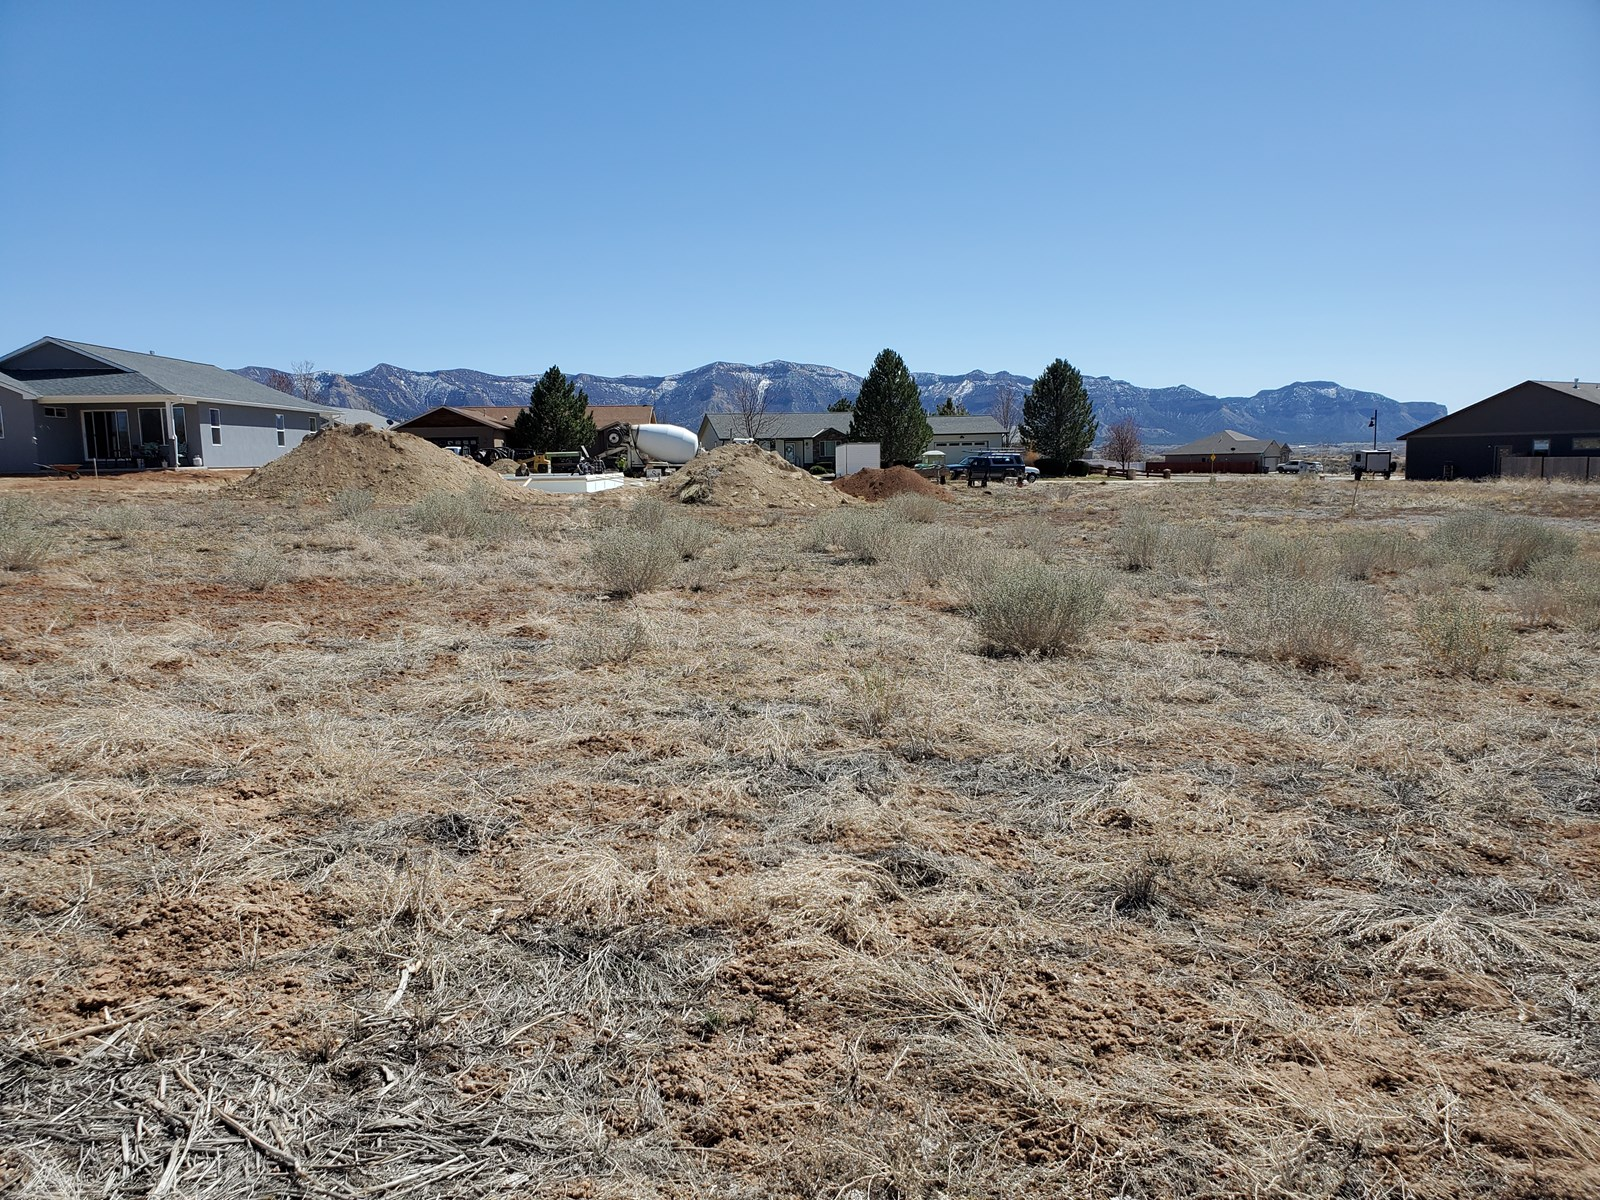 Land for Sale in Cortez - Build your Colorado dream house